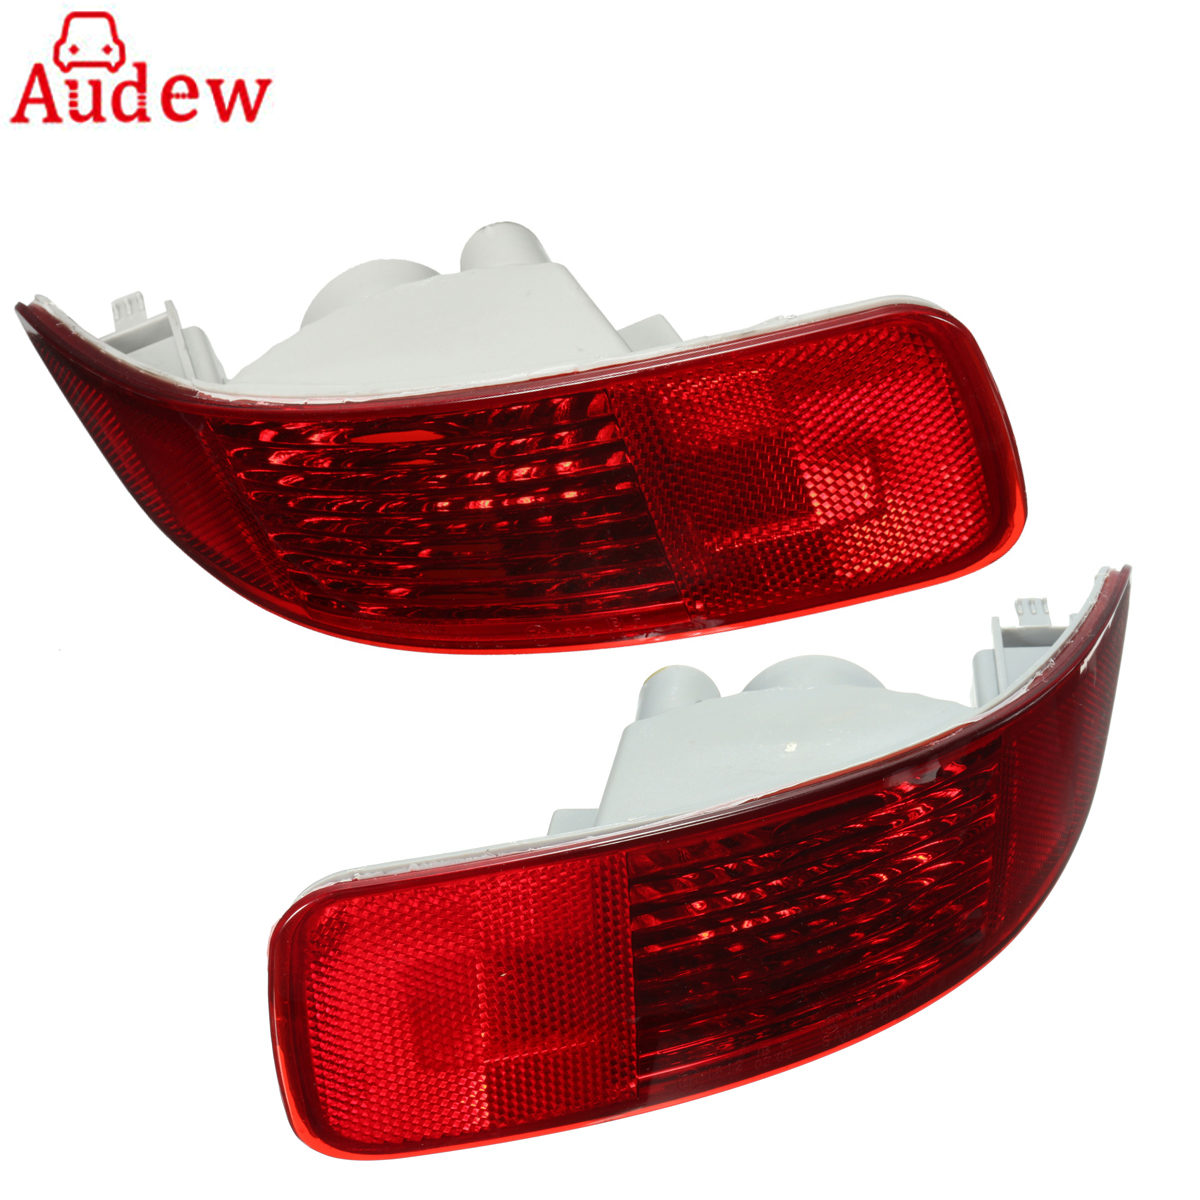 1Pcs Car Rear Tail Fog Light Warning Lamp Right/Left For Mitsubish Outlander for Peugeot for Citroen 07-12 ...